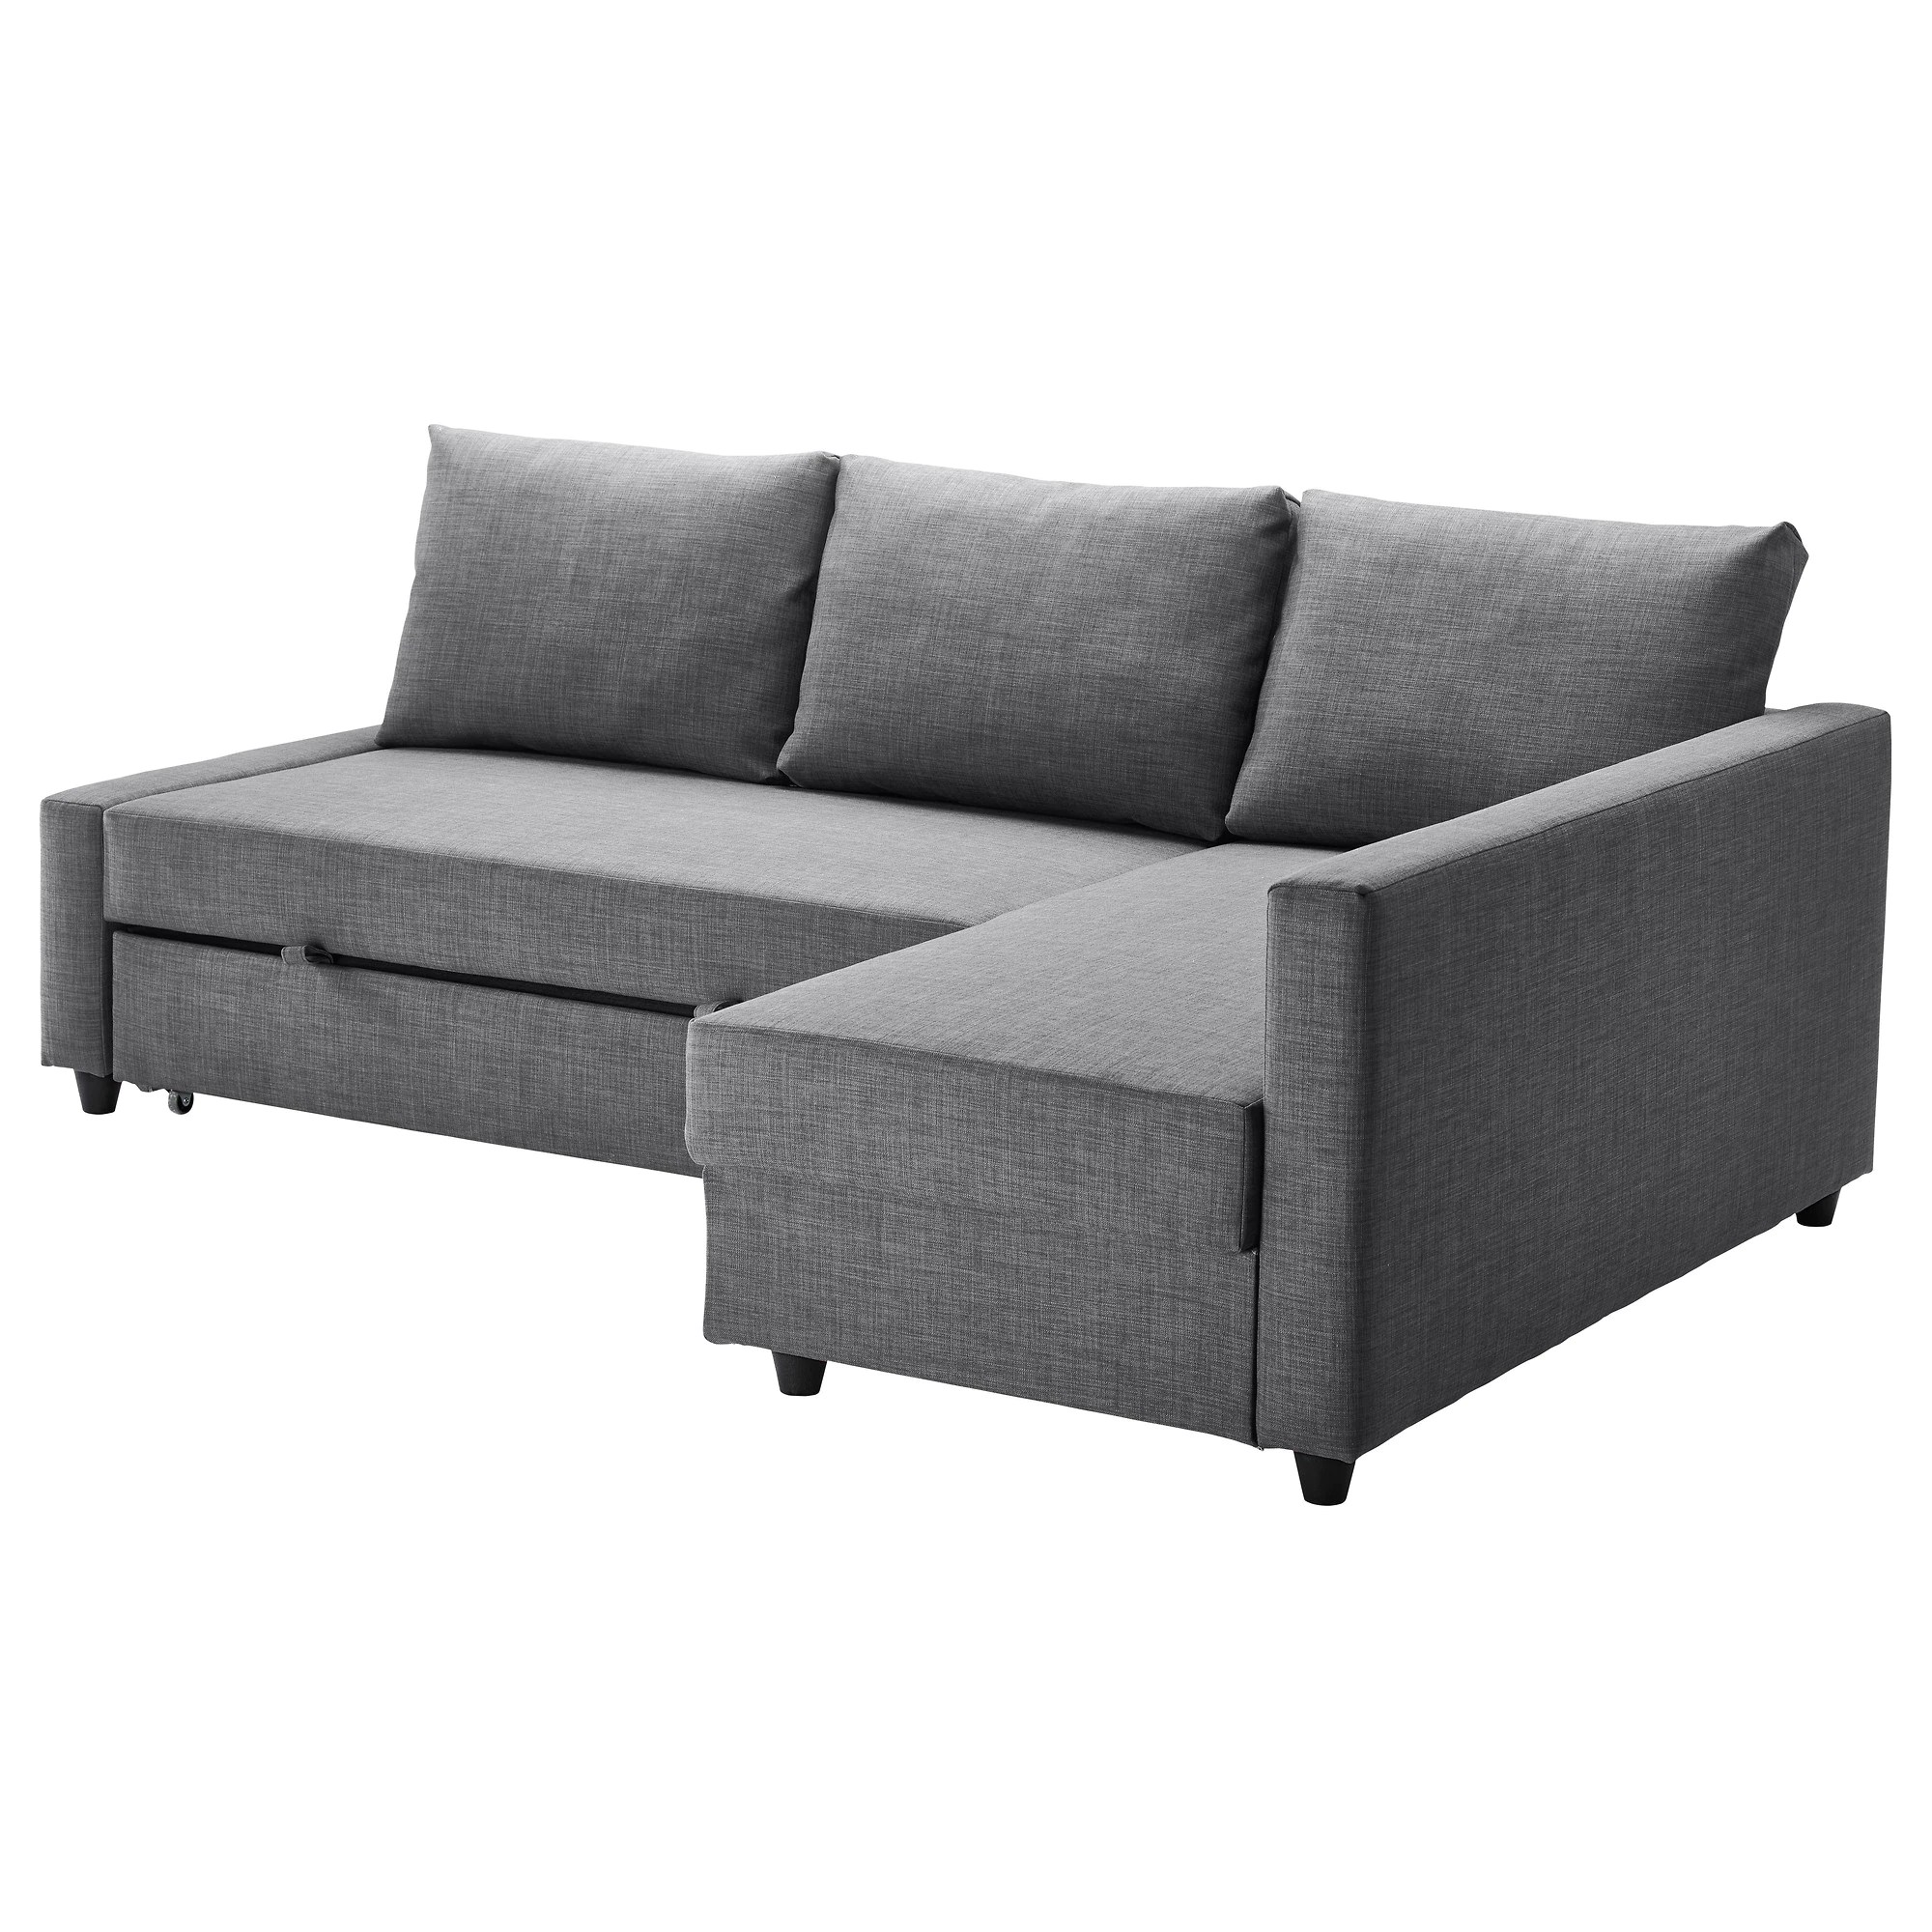 Bettsofa Florida Friheten Sleeper Sectional 3 Seat W Storage Skiftebo Dark Gray